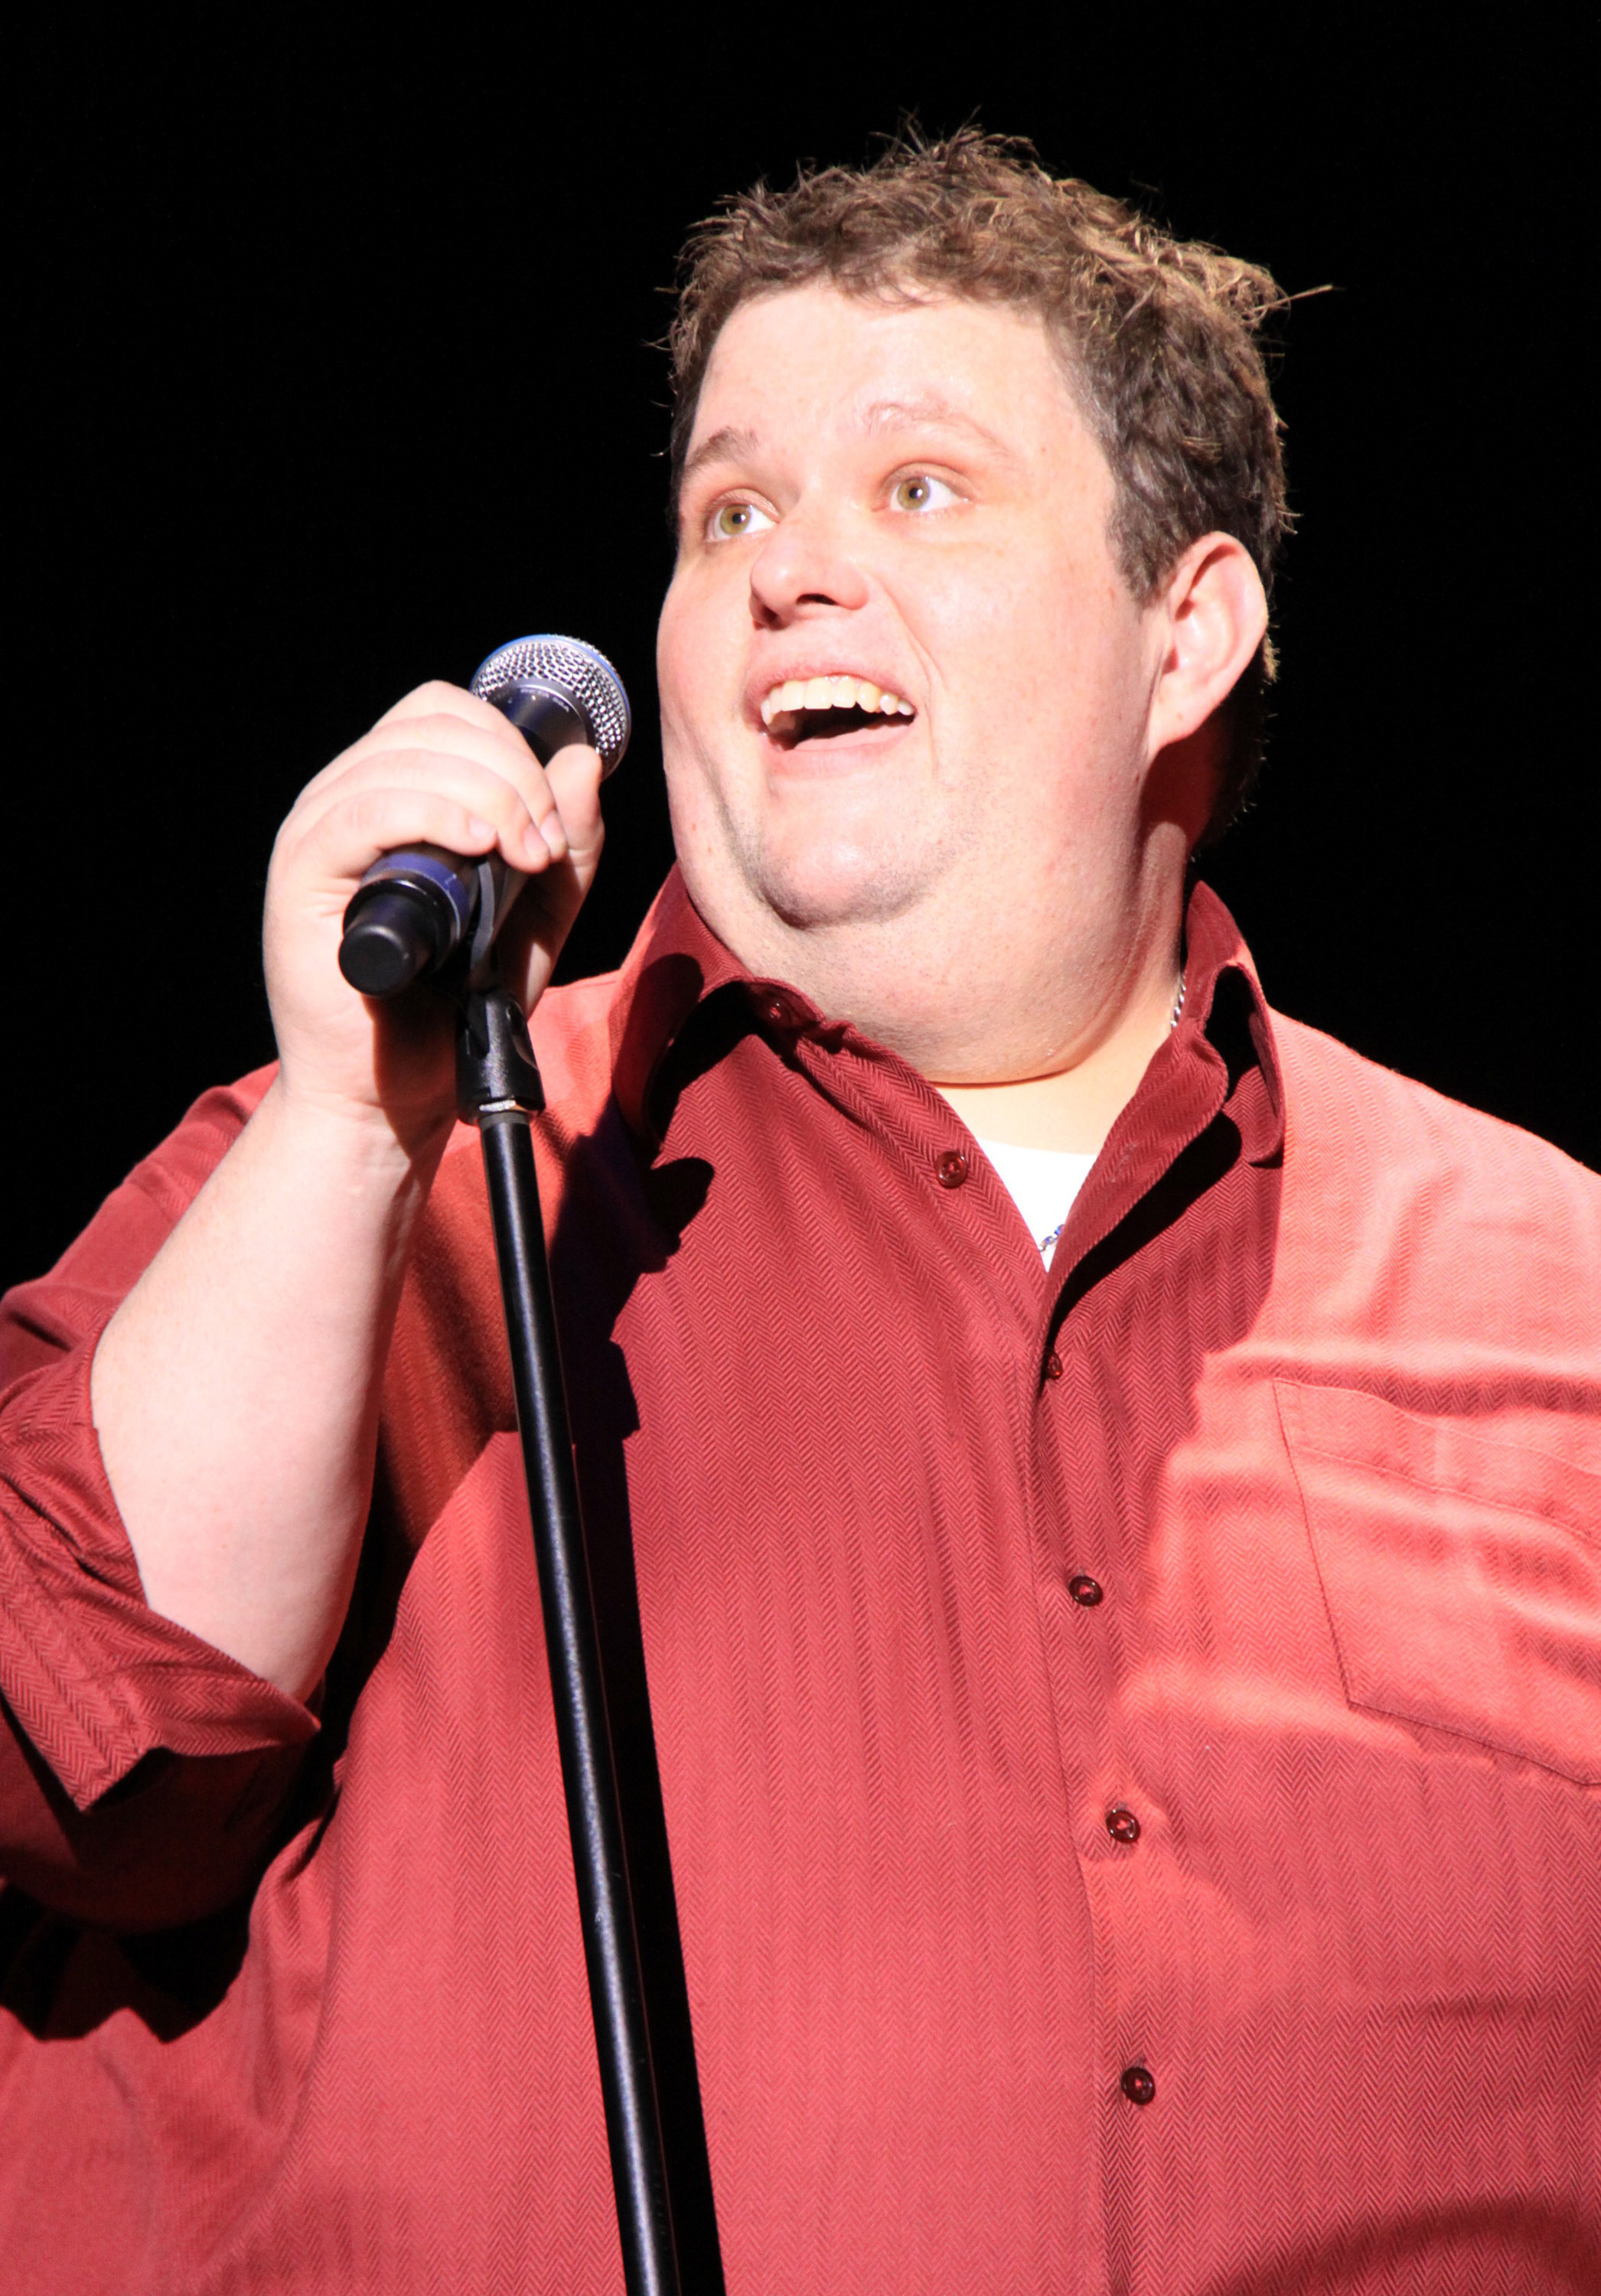 Ralphie May                  performs a live show at the GWU Lisner Auditorium                  Washington                                    Featuring: Ralphie May                  Where: DC, United States                  When: 09 Apr 2011                  Credit: WENN